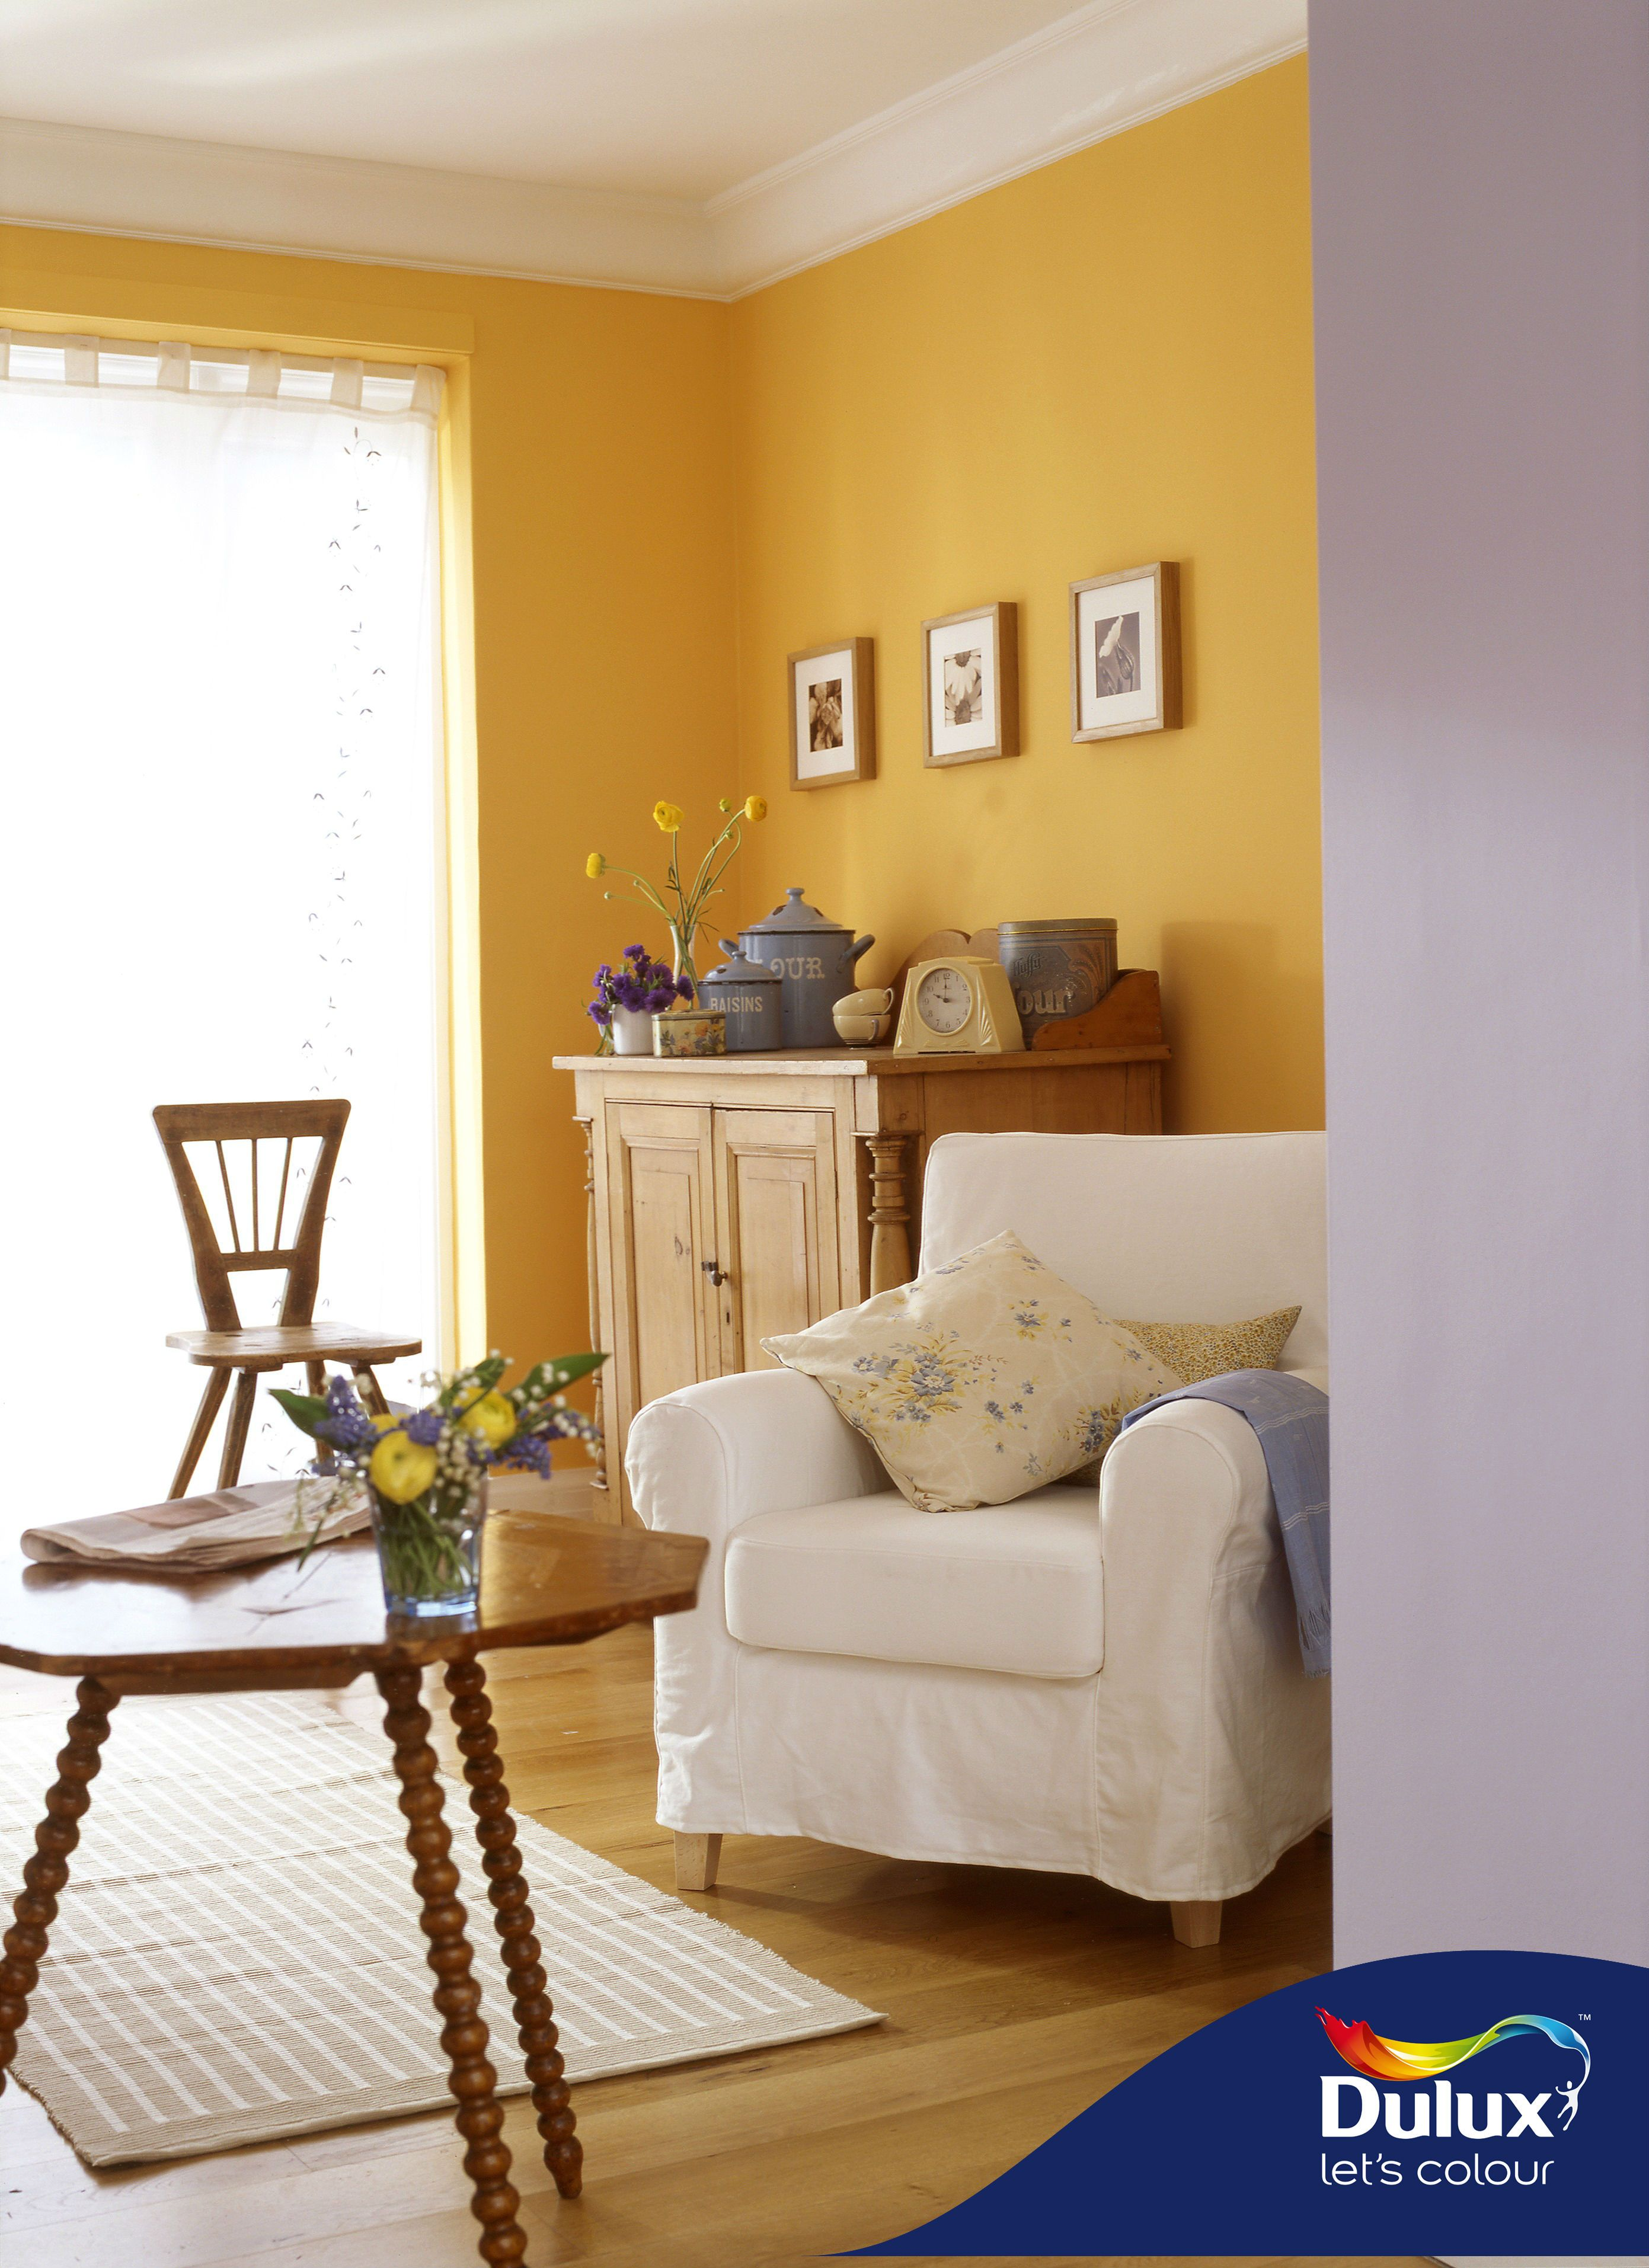 Plus painting and decorating tips from a which? Adding a tinge of mustard-gold yellow to the cozy corner